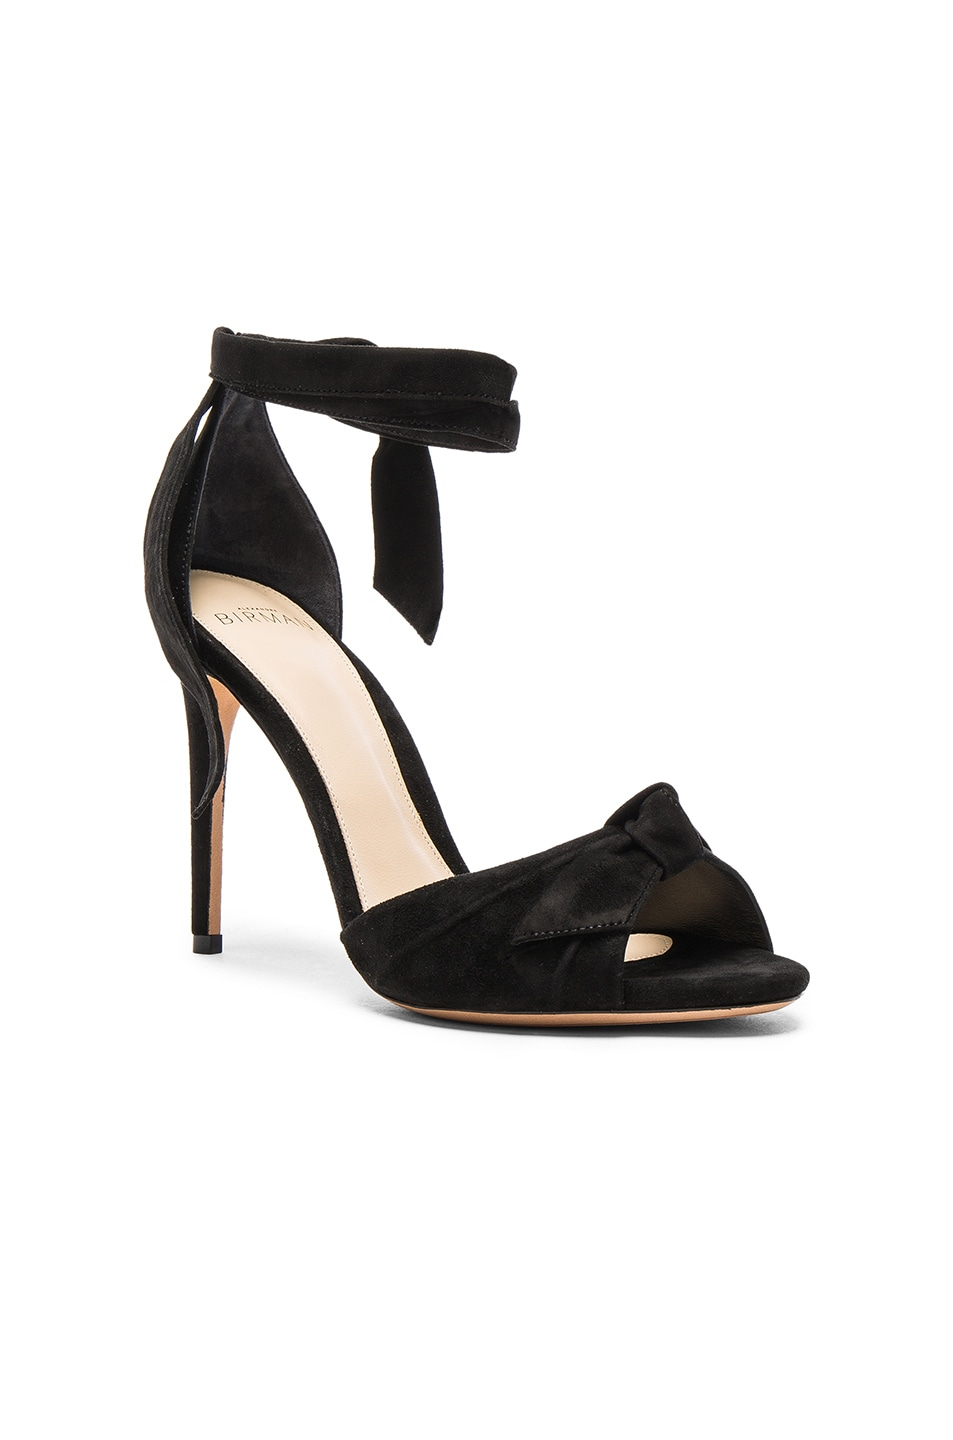 Image 2 of Alexandre Birman Suede New Clarita Heels in Black